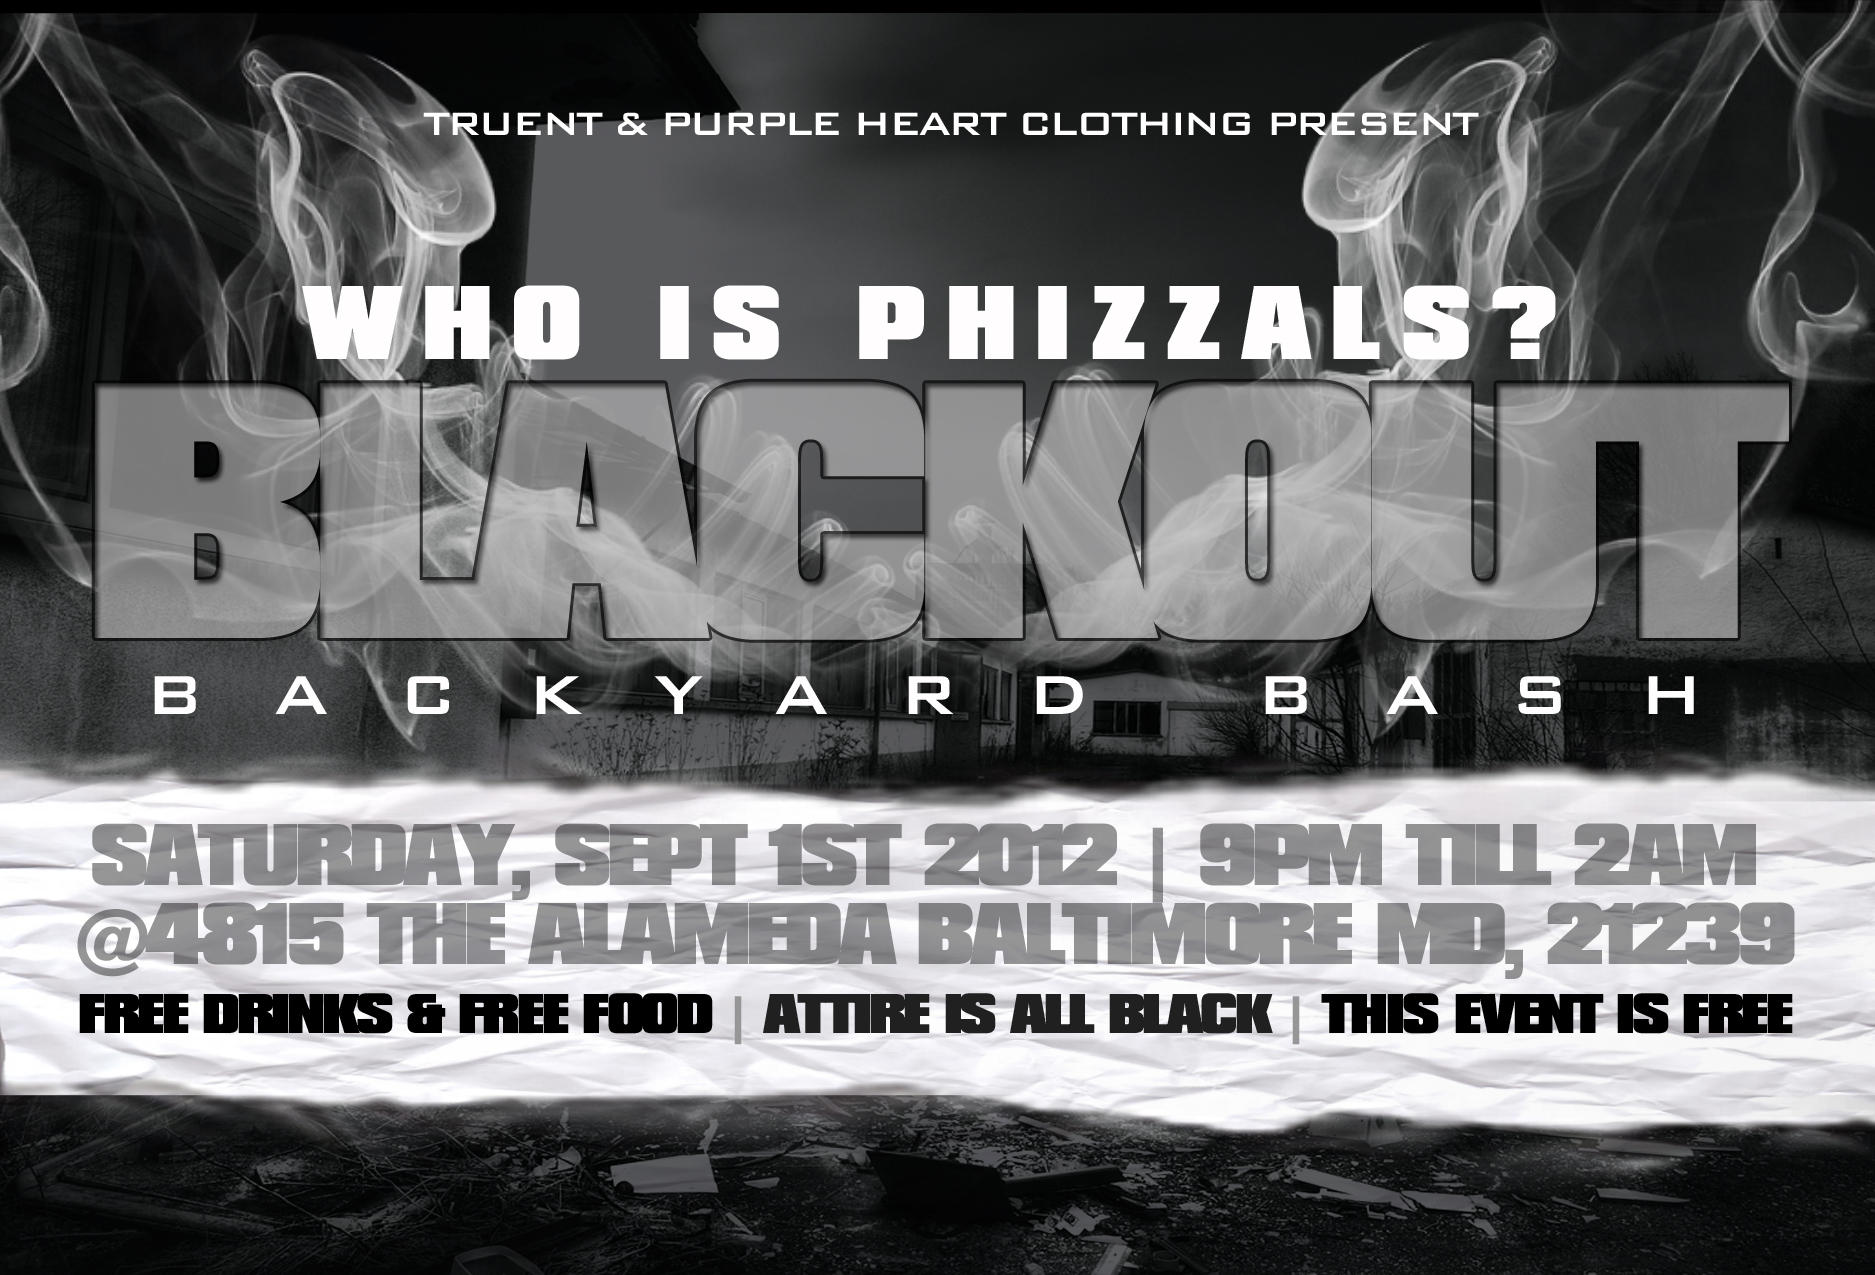 Who Coming?? RETWEET If U COMING!!! ALL BLACK ATTIRE & A RED CARPET WILL BE THERE!!!! SO BE READY!!!! http://t.co/08dGSCRB